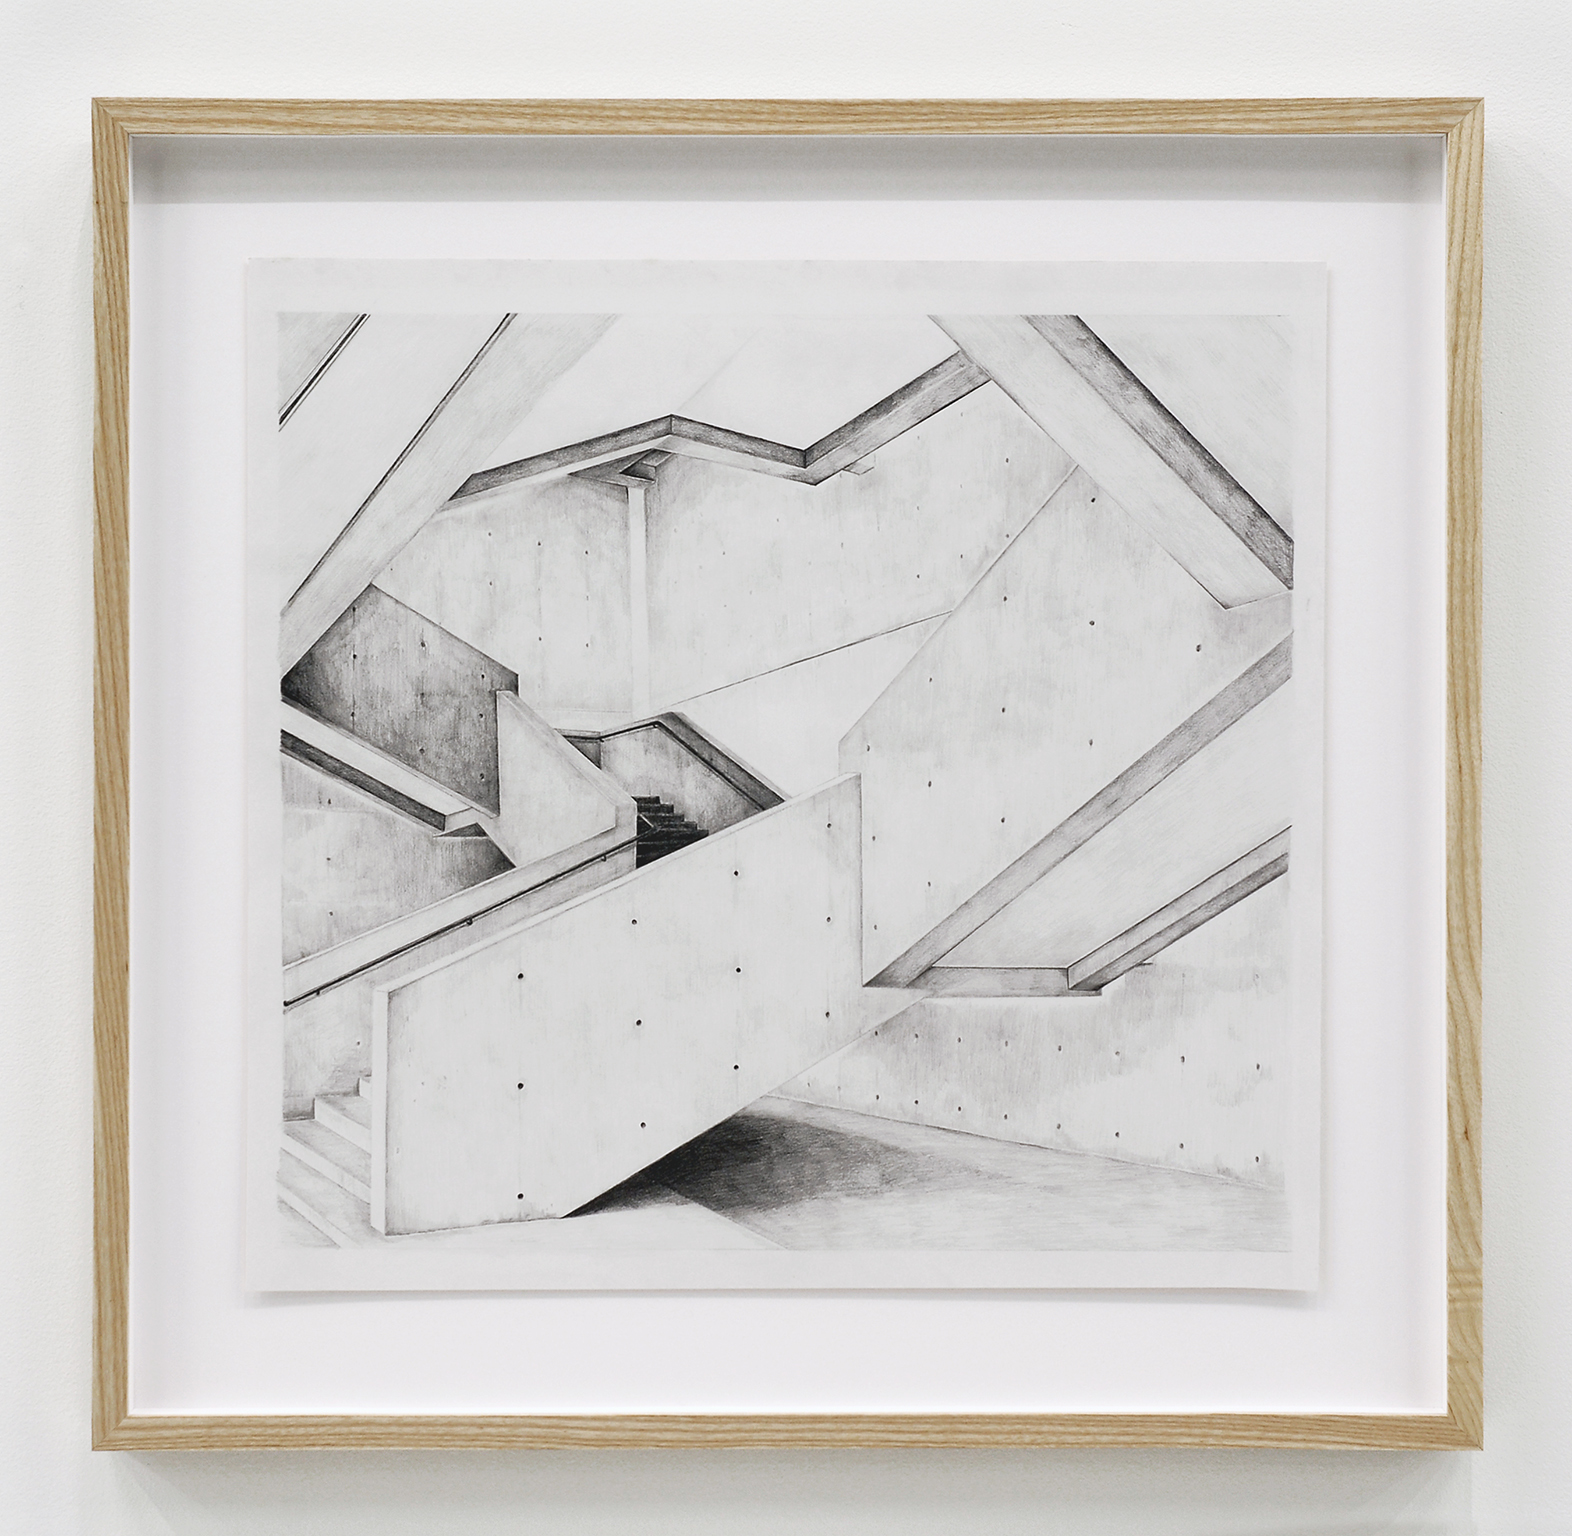 Alex Morrison, The Poetics of Grey (No. 8), 2007, graphite on paper, 23 x 24 in. (59 x 61 cm)  ​ by